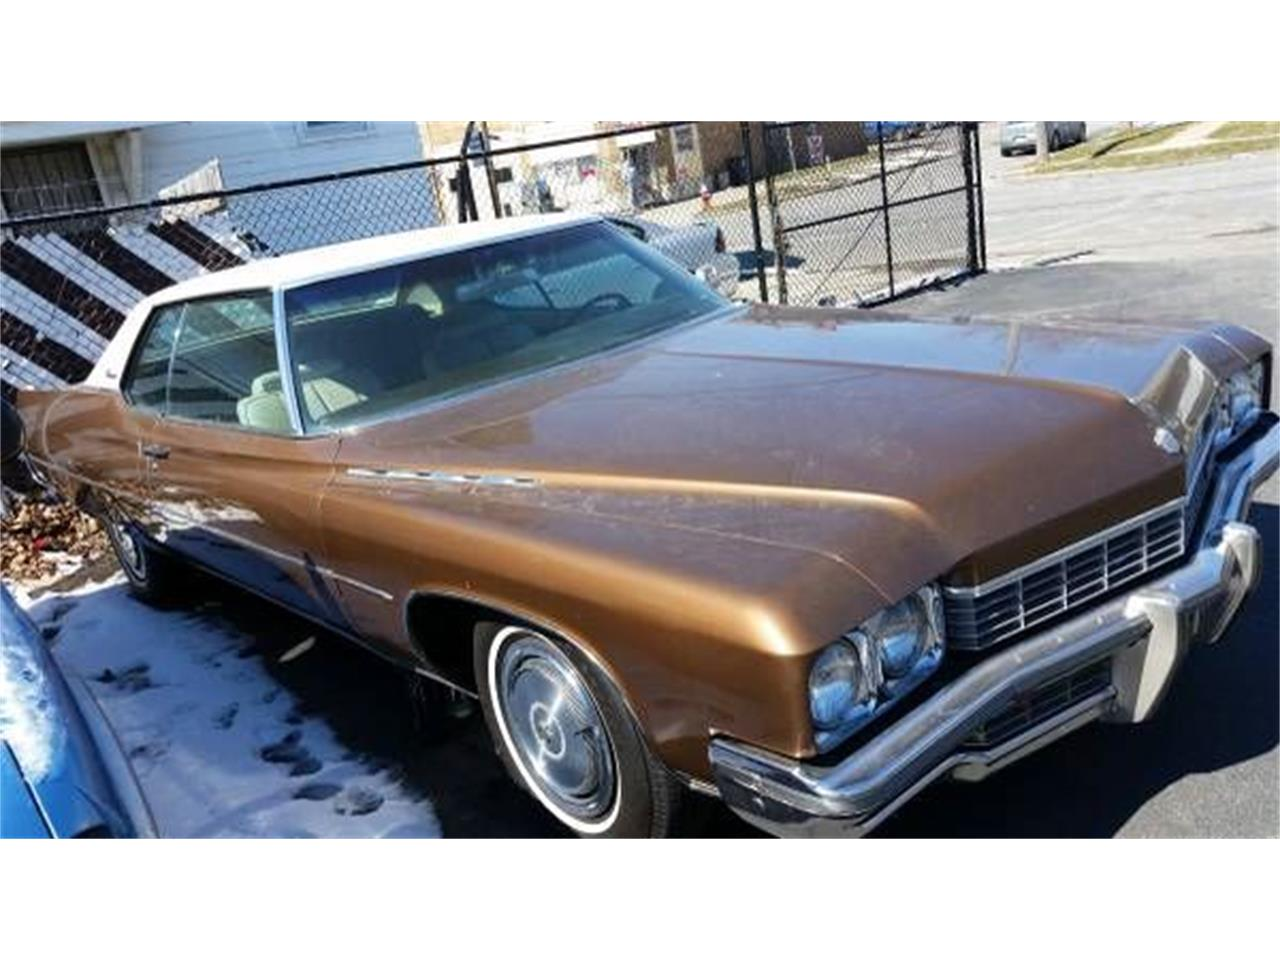 Large Picture of Classic 1972 Buick Electra 225 located in Cadillac Michigan - $8,995.00 - NZIT